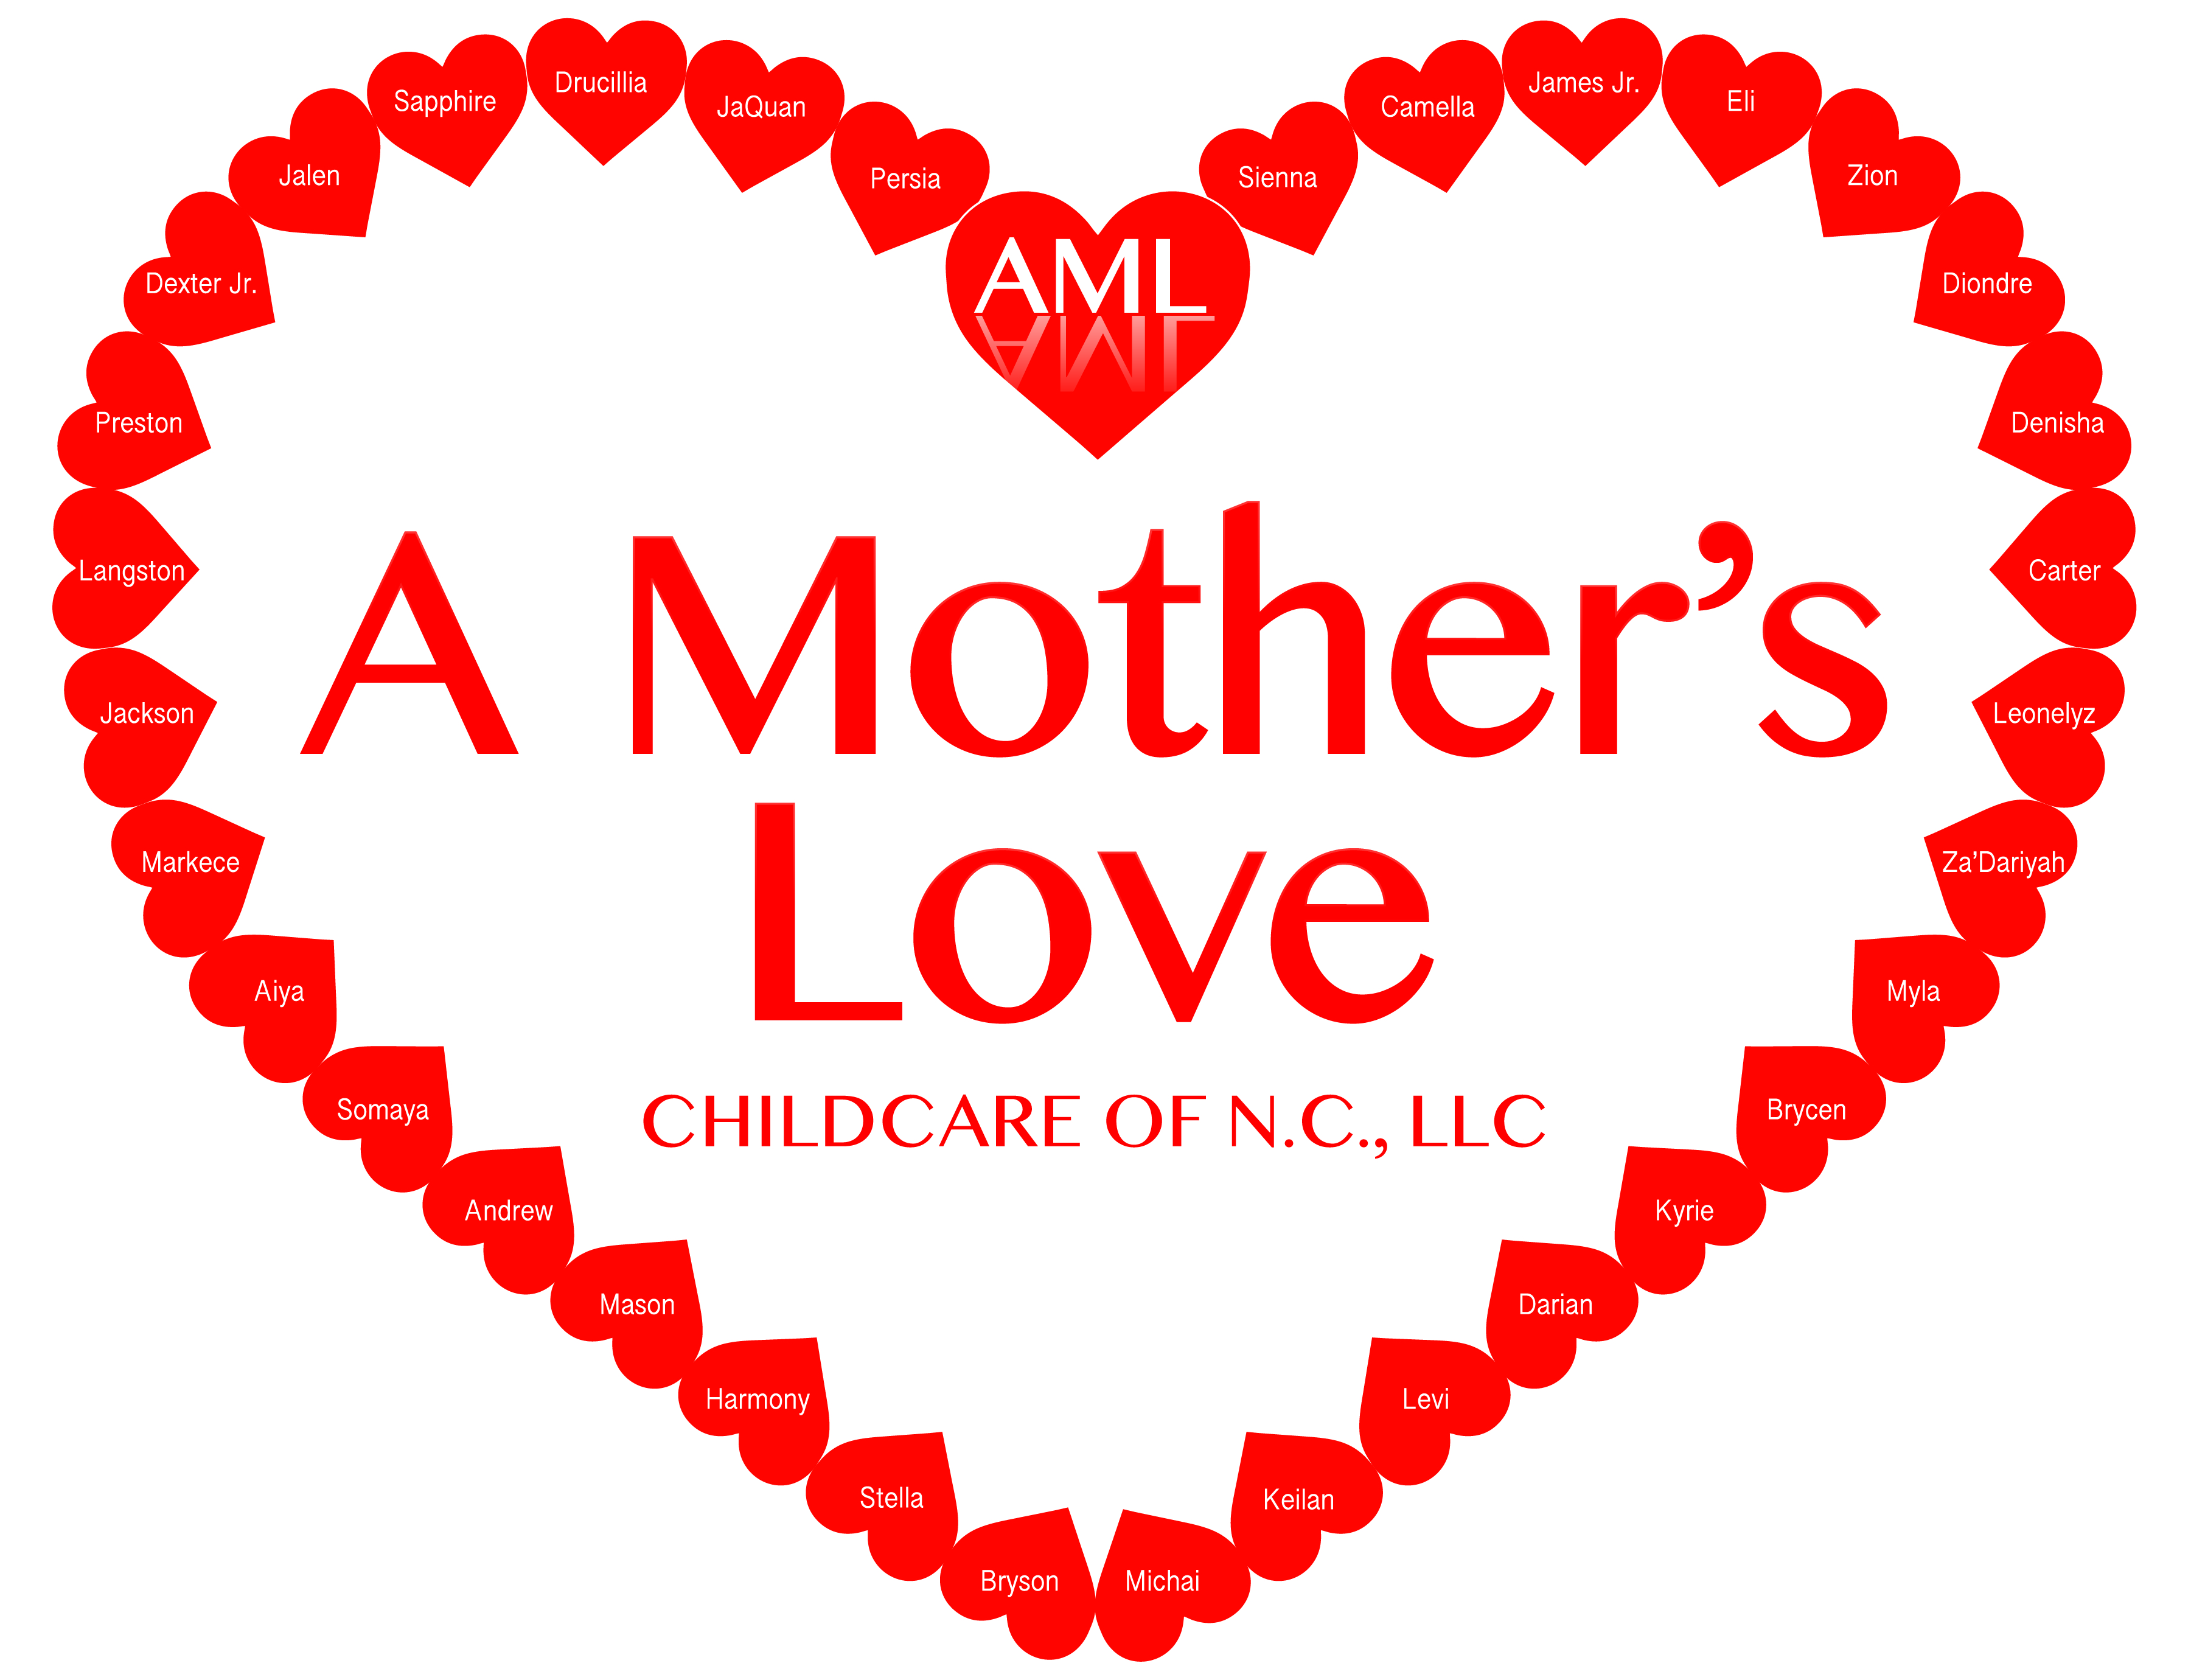 A Mother's Love Child Care of N.C., LLC